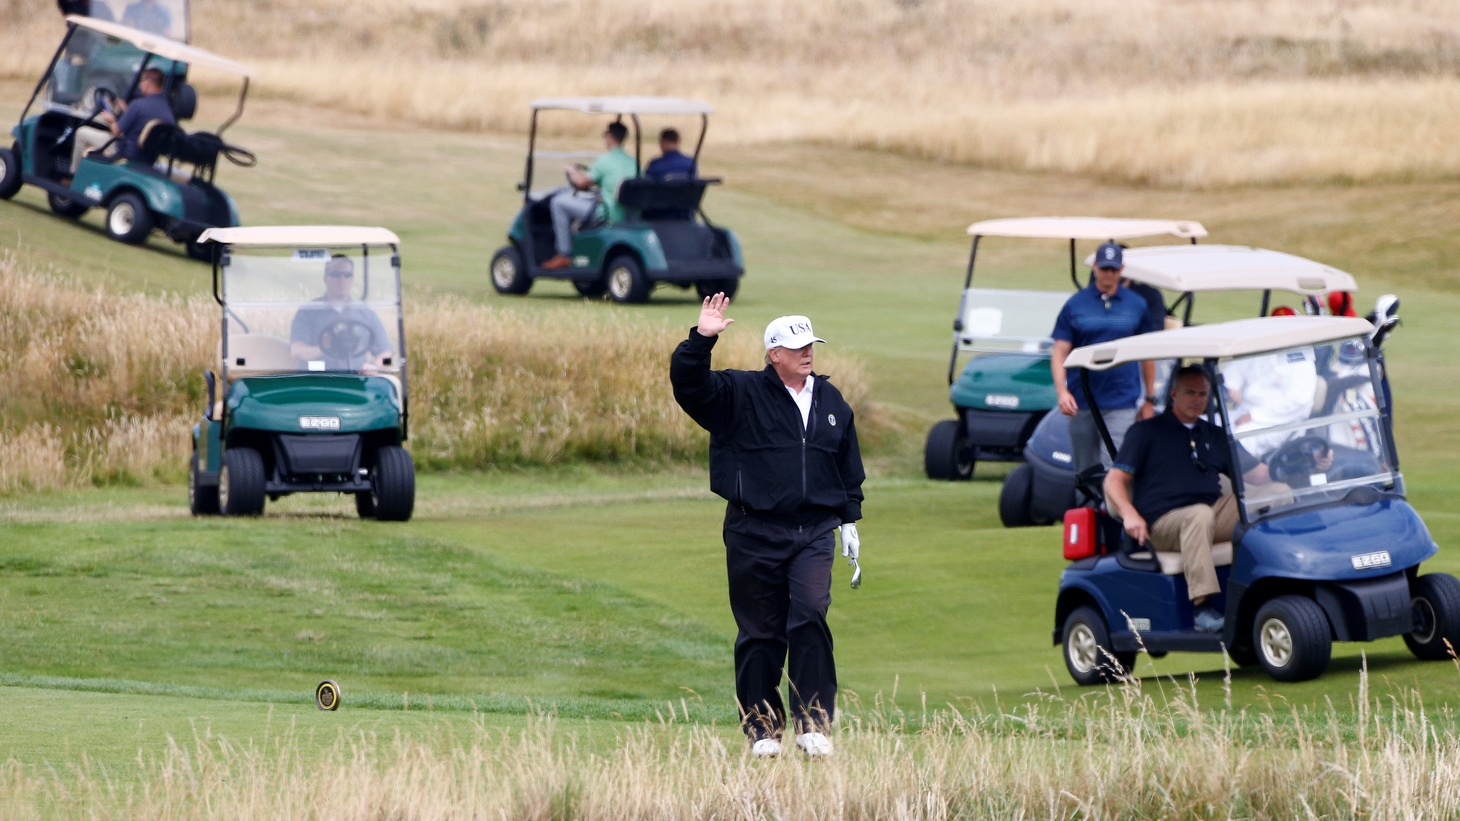 U.S. President Donald Trump gestures as he walks on the course of his golf resort, in Turnberry, Scotland July 14, 2018.